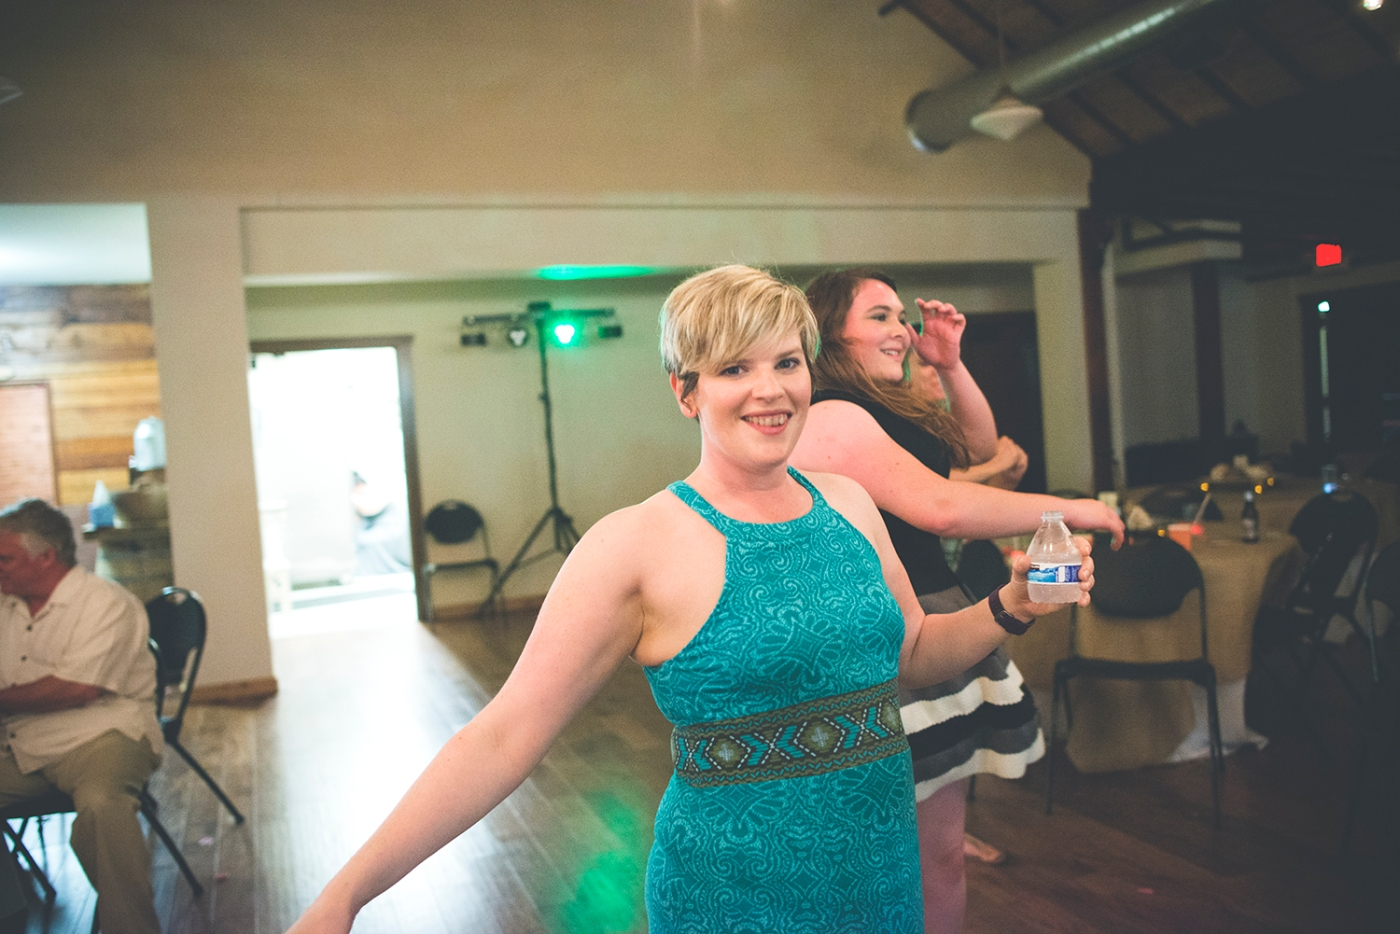 Jane_S_Seattle_photography_Kadie_and_Steve_2016_Des_Moines_Marina_Wedding_DSC_2693